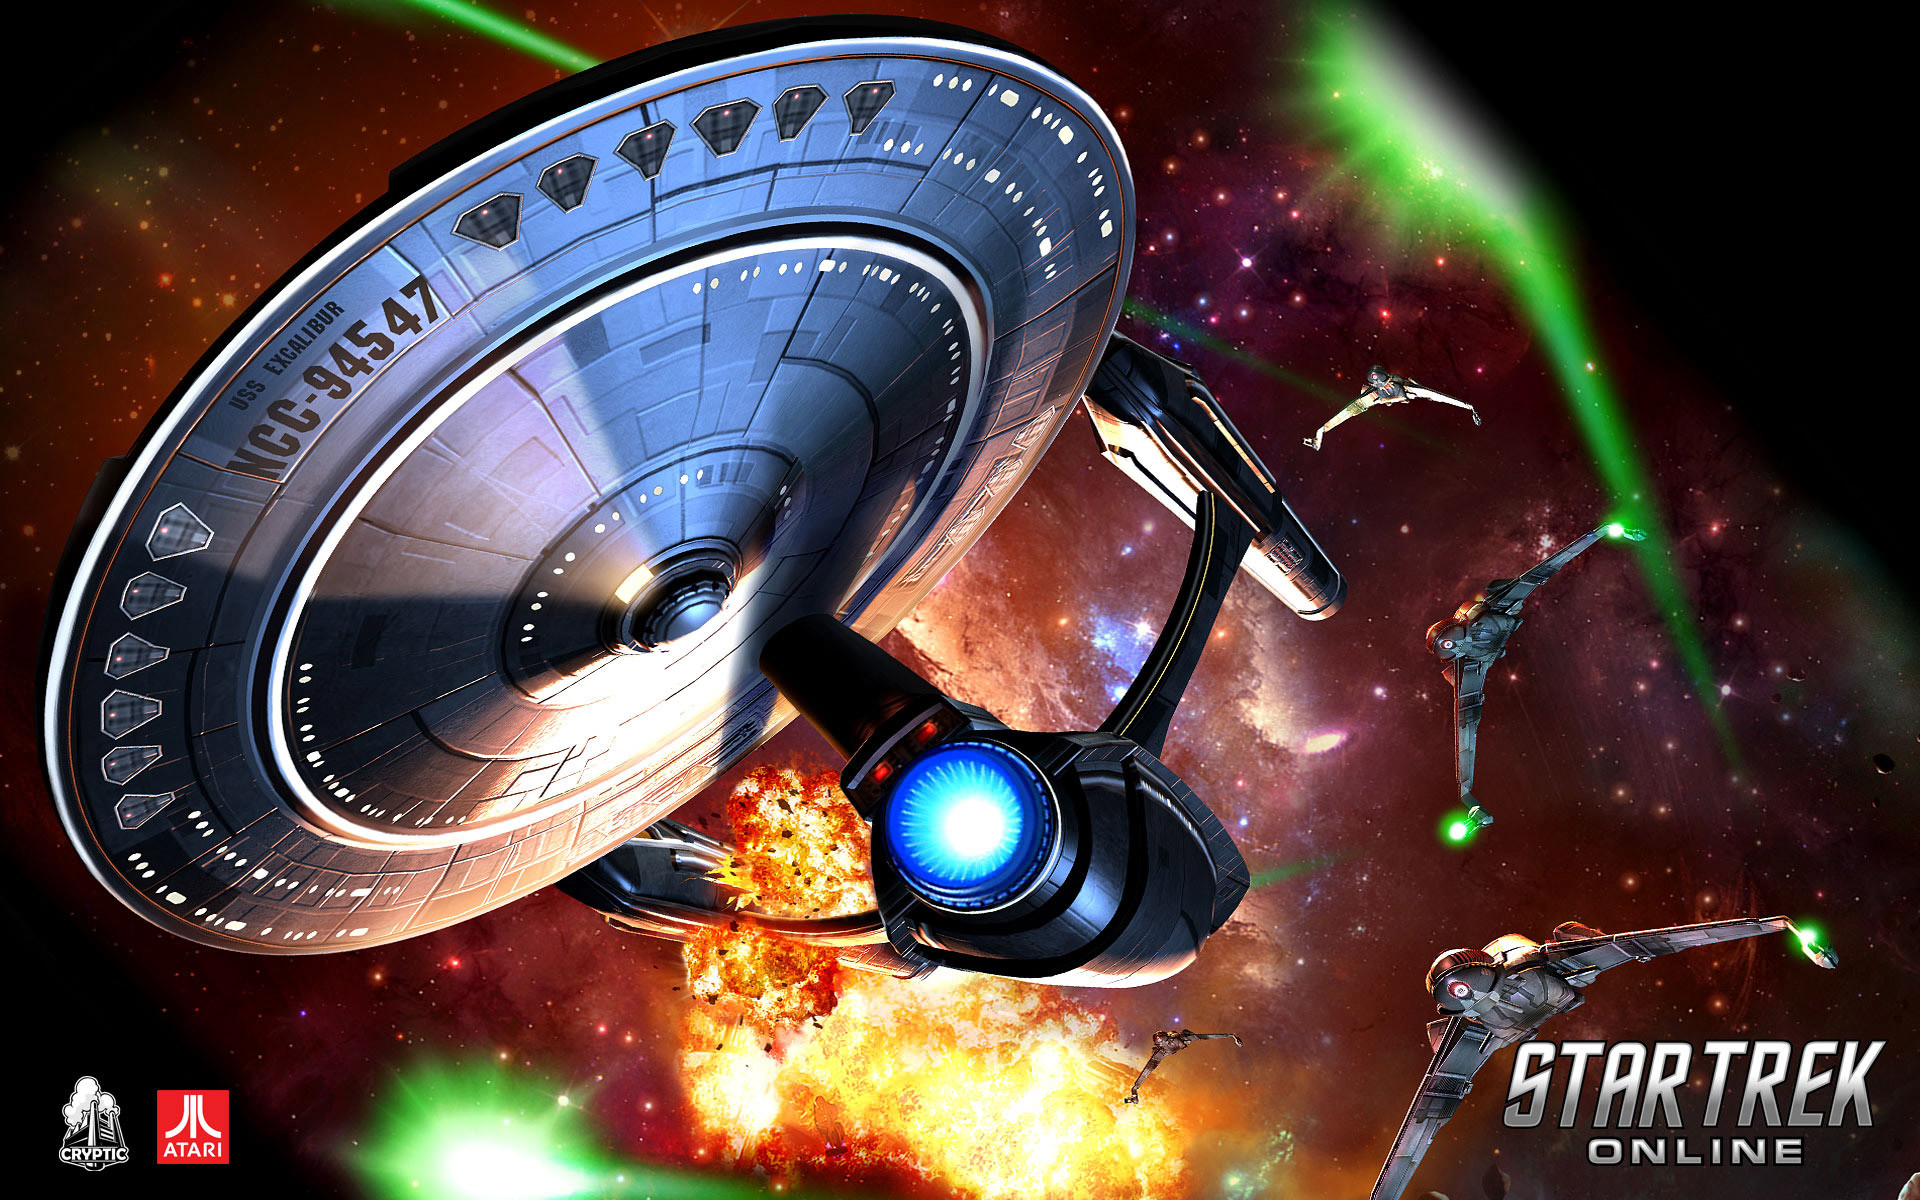 HD Star Trek Online Wallpaper for iPhone, Android, Mobile – 14166 .